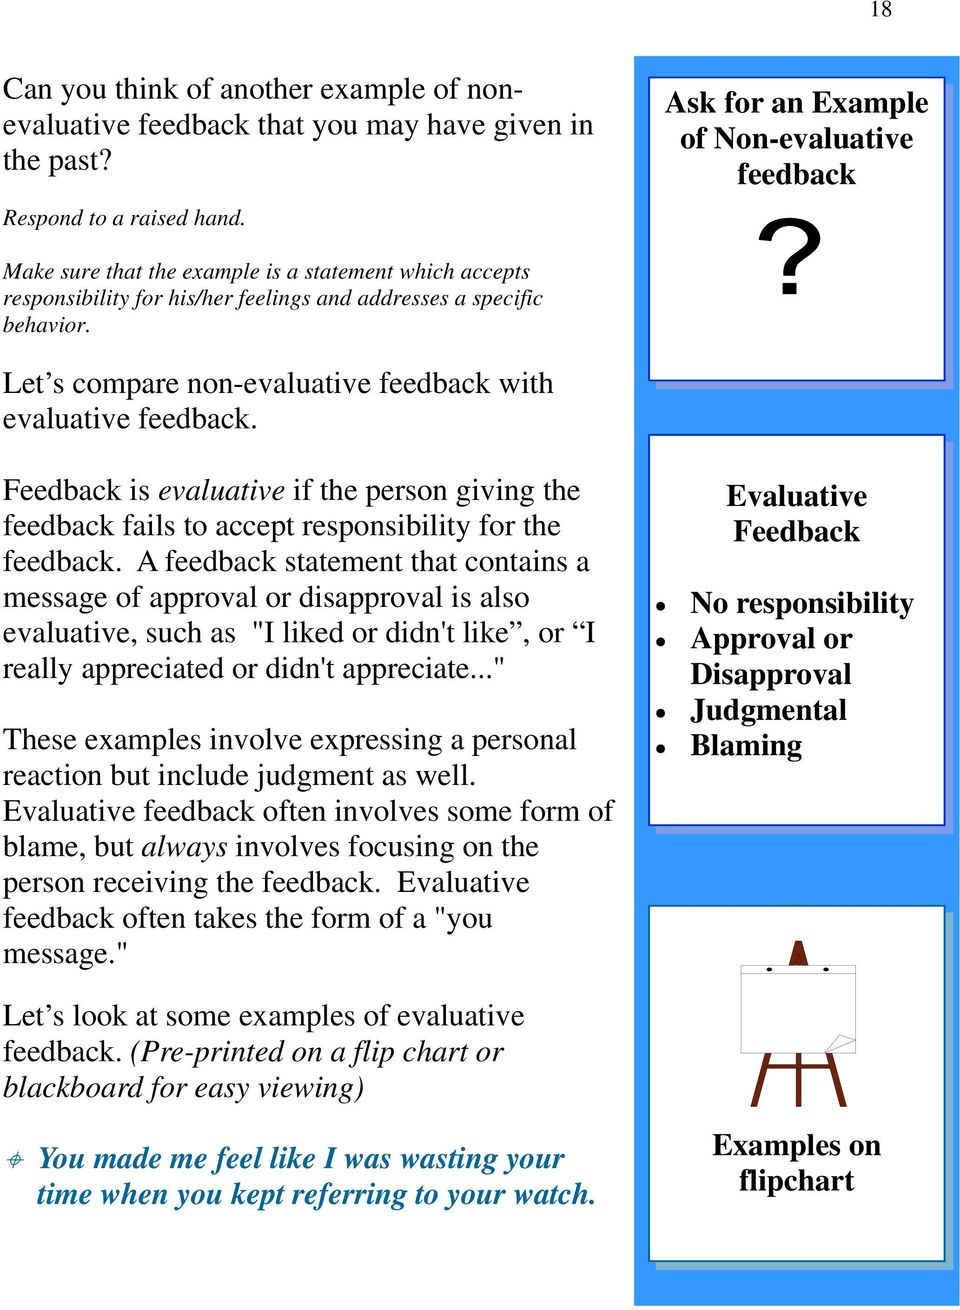 Let s compare non-evaluative feedback with evaluative feedback. Feedback is evaluative if the person giving the feedback fails to accept responsibility for the feedback.